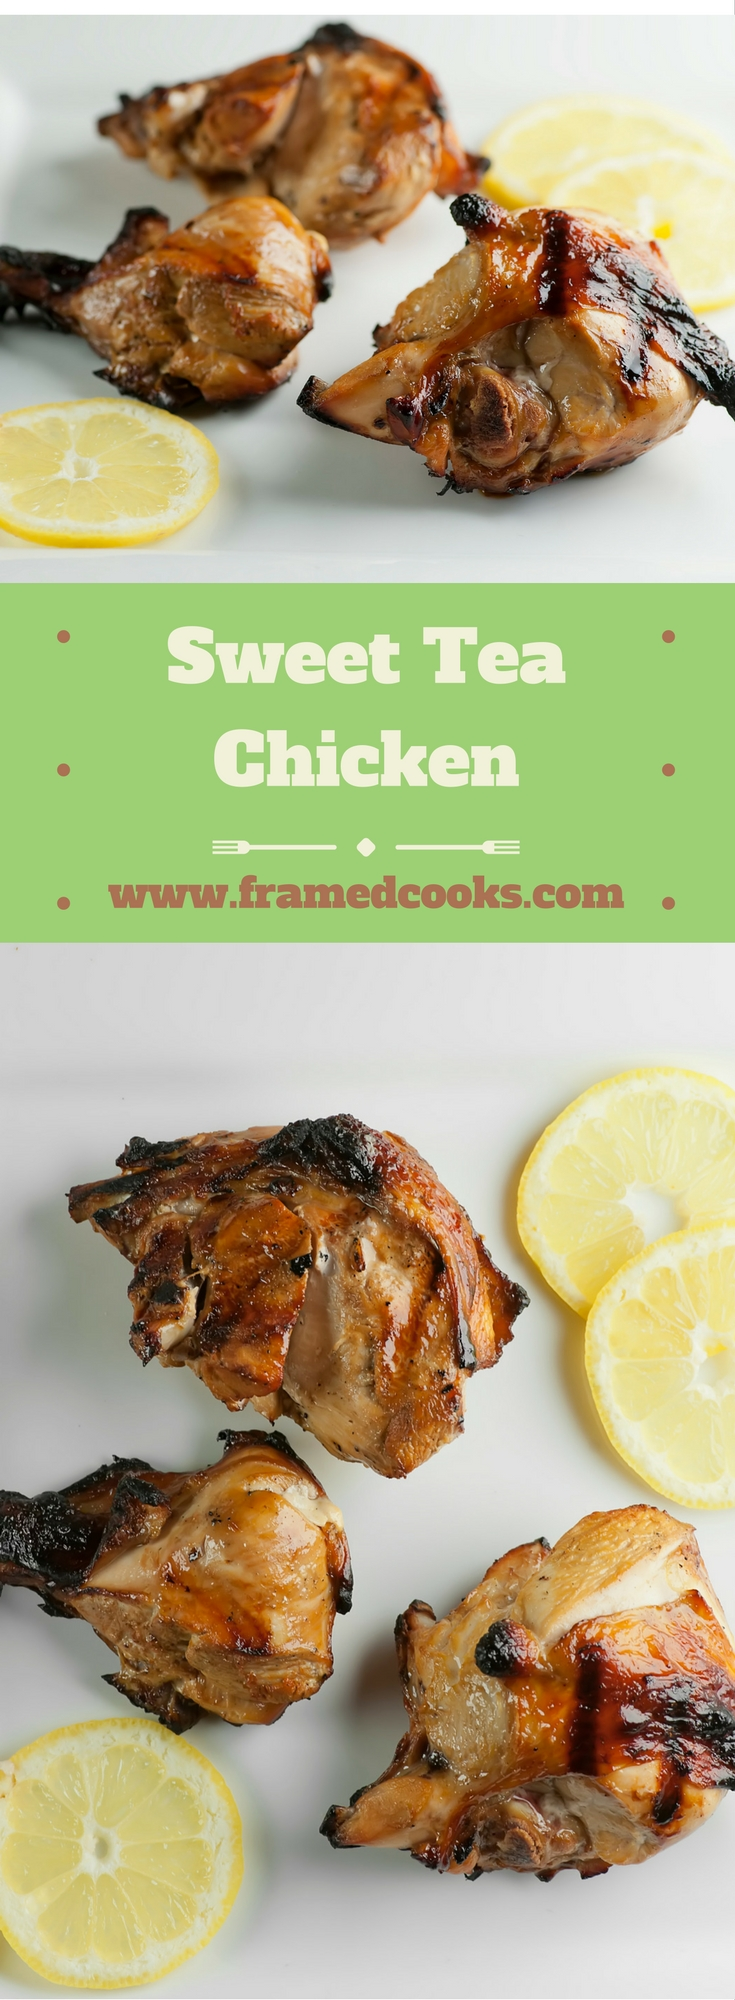 Give your grilled chicken a Southern taste by marinating it in a mixture of sweet tea and herbs with this recipe for sweet tea chicken.